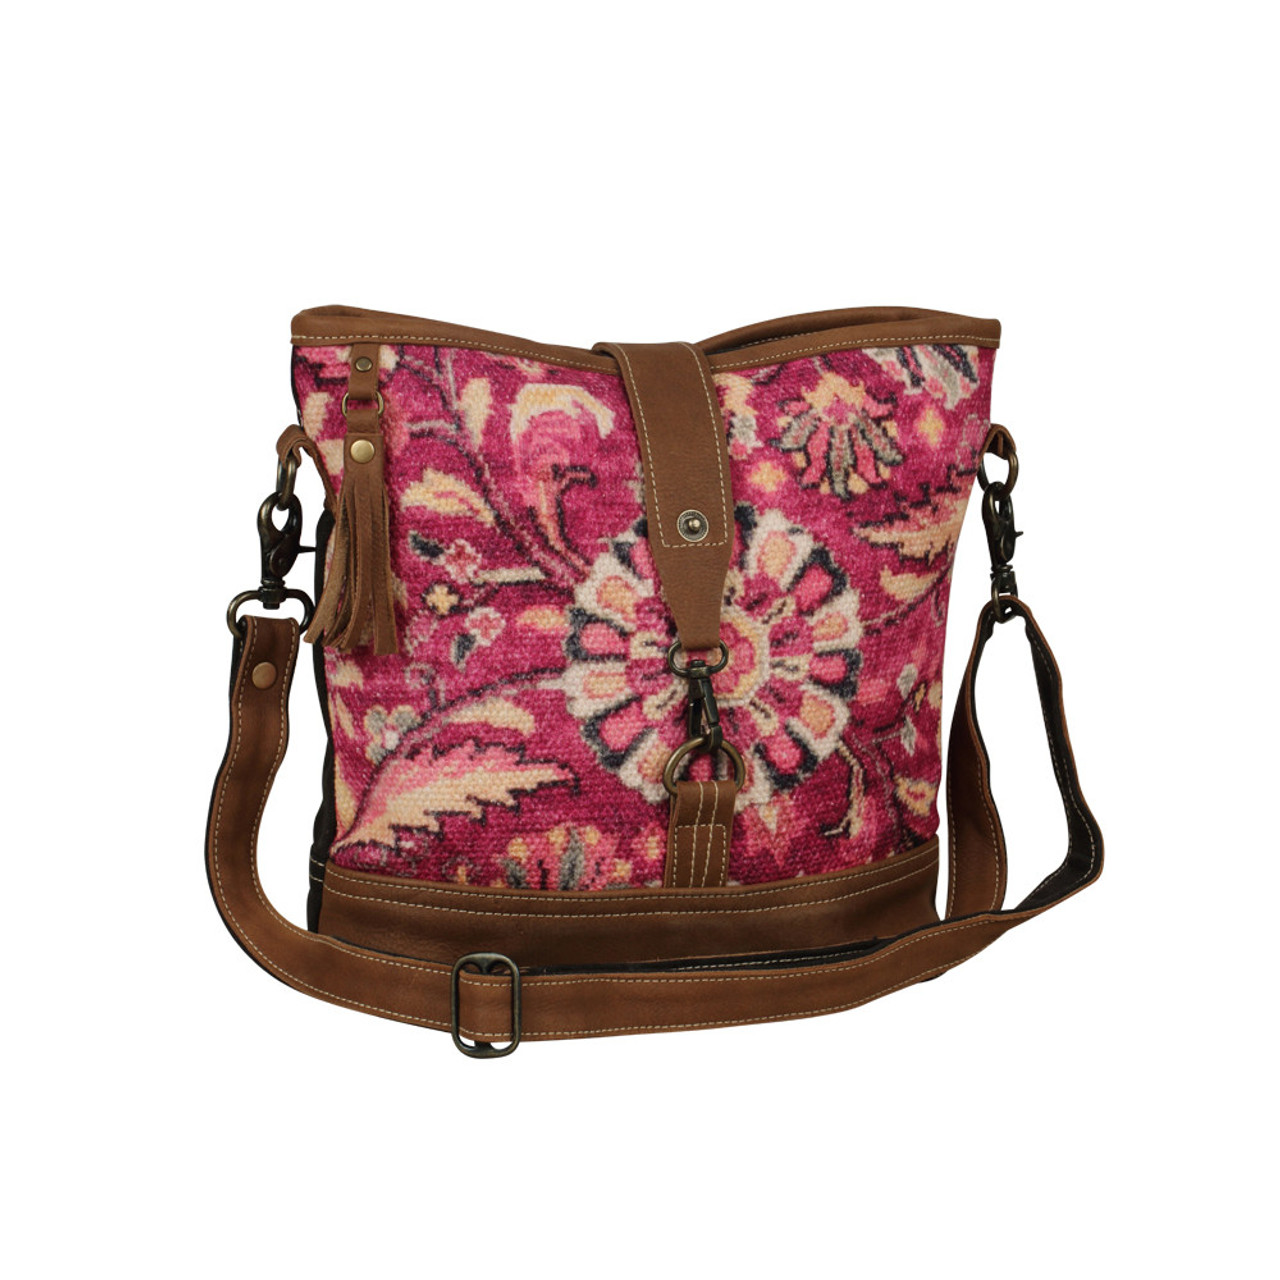 Leather, canvas & rug tote. The front has a vibrant pink floral rug print with a front clasp and main zipper closure. The back is solid canvas with a pocket and zipper. Interior has double open pockets and a single pocket with zipper.